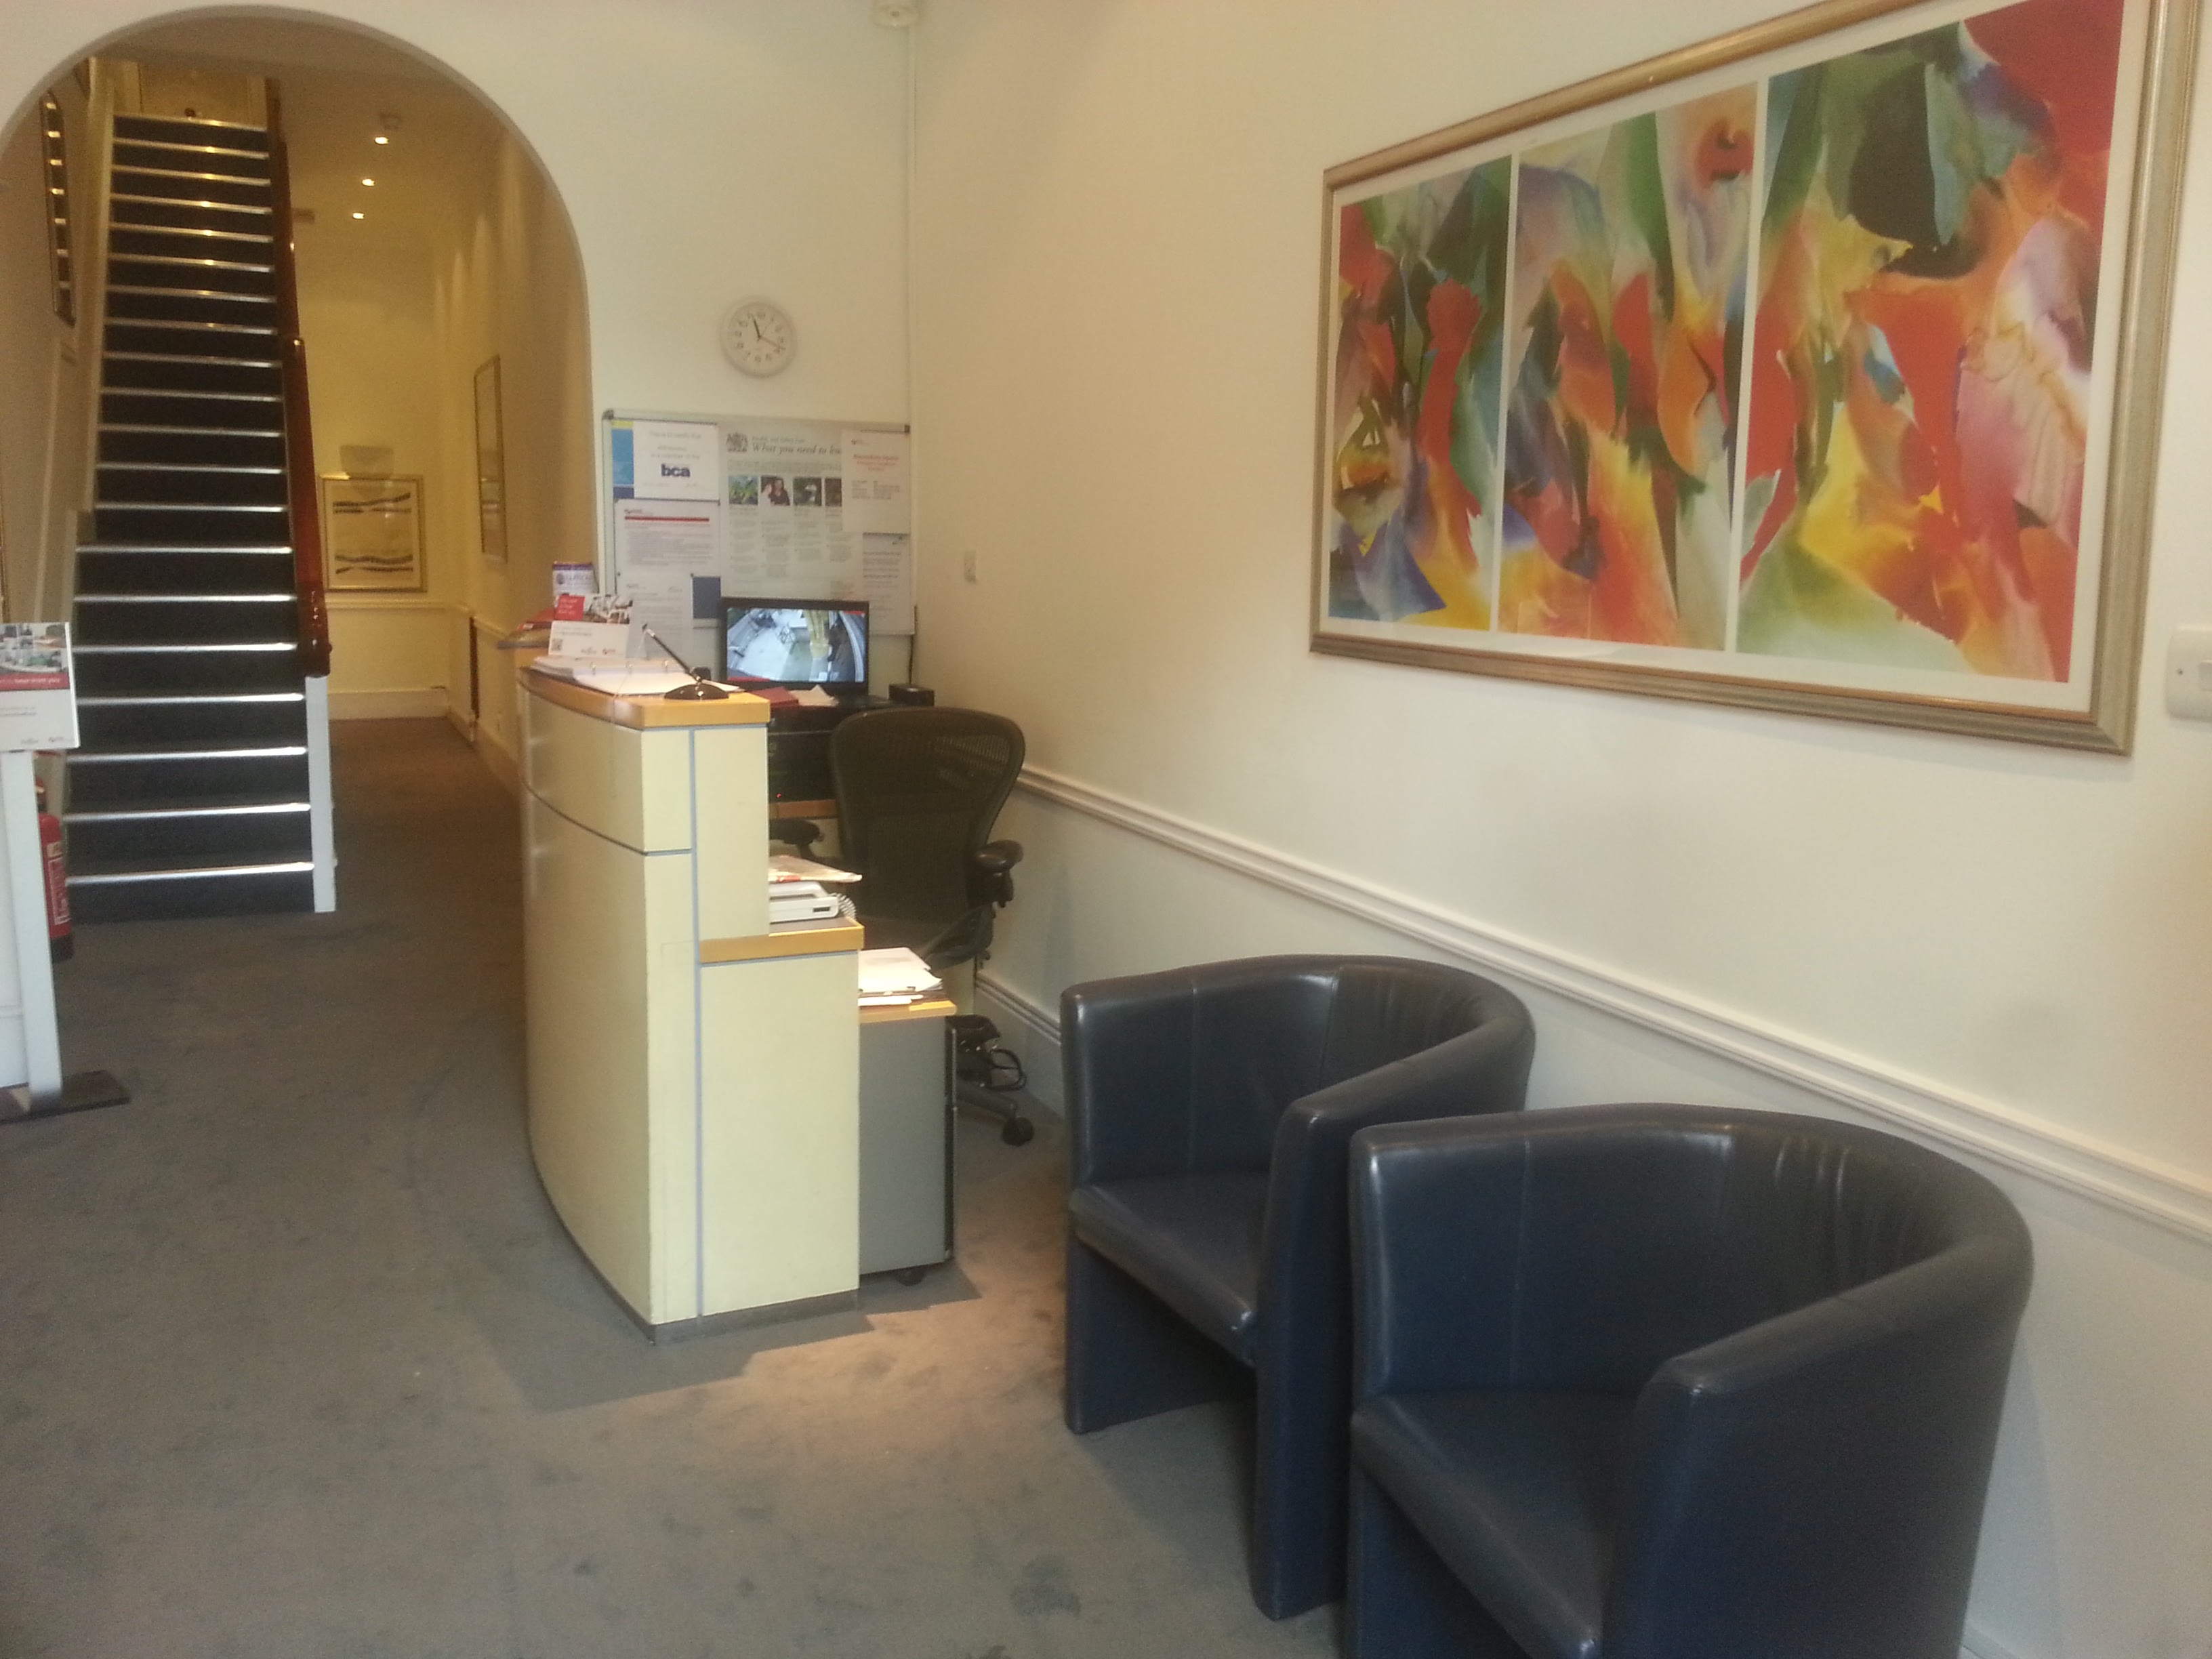 21 Painting and decorating, cental London